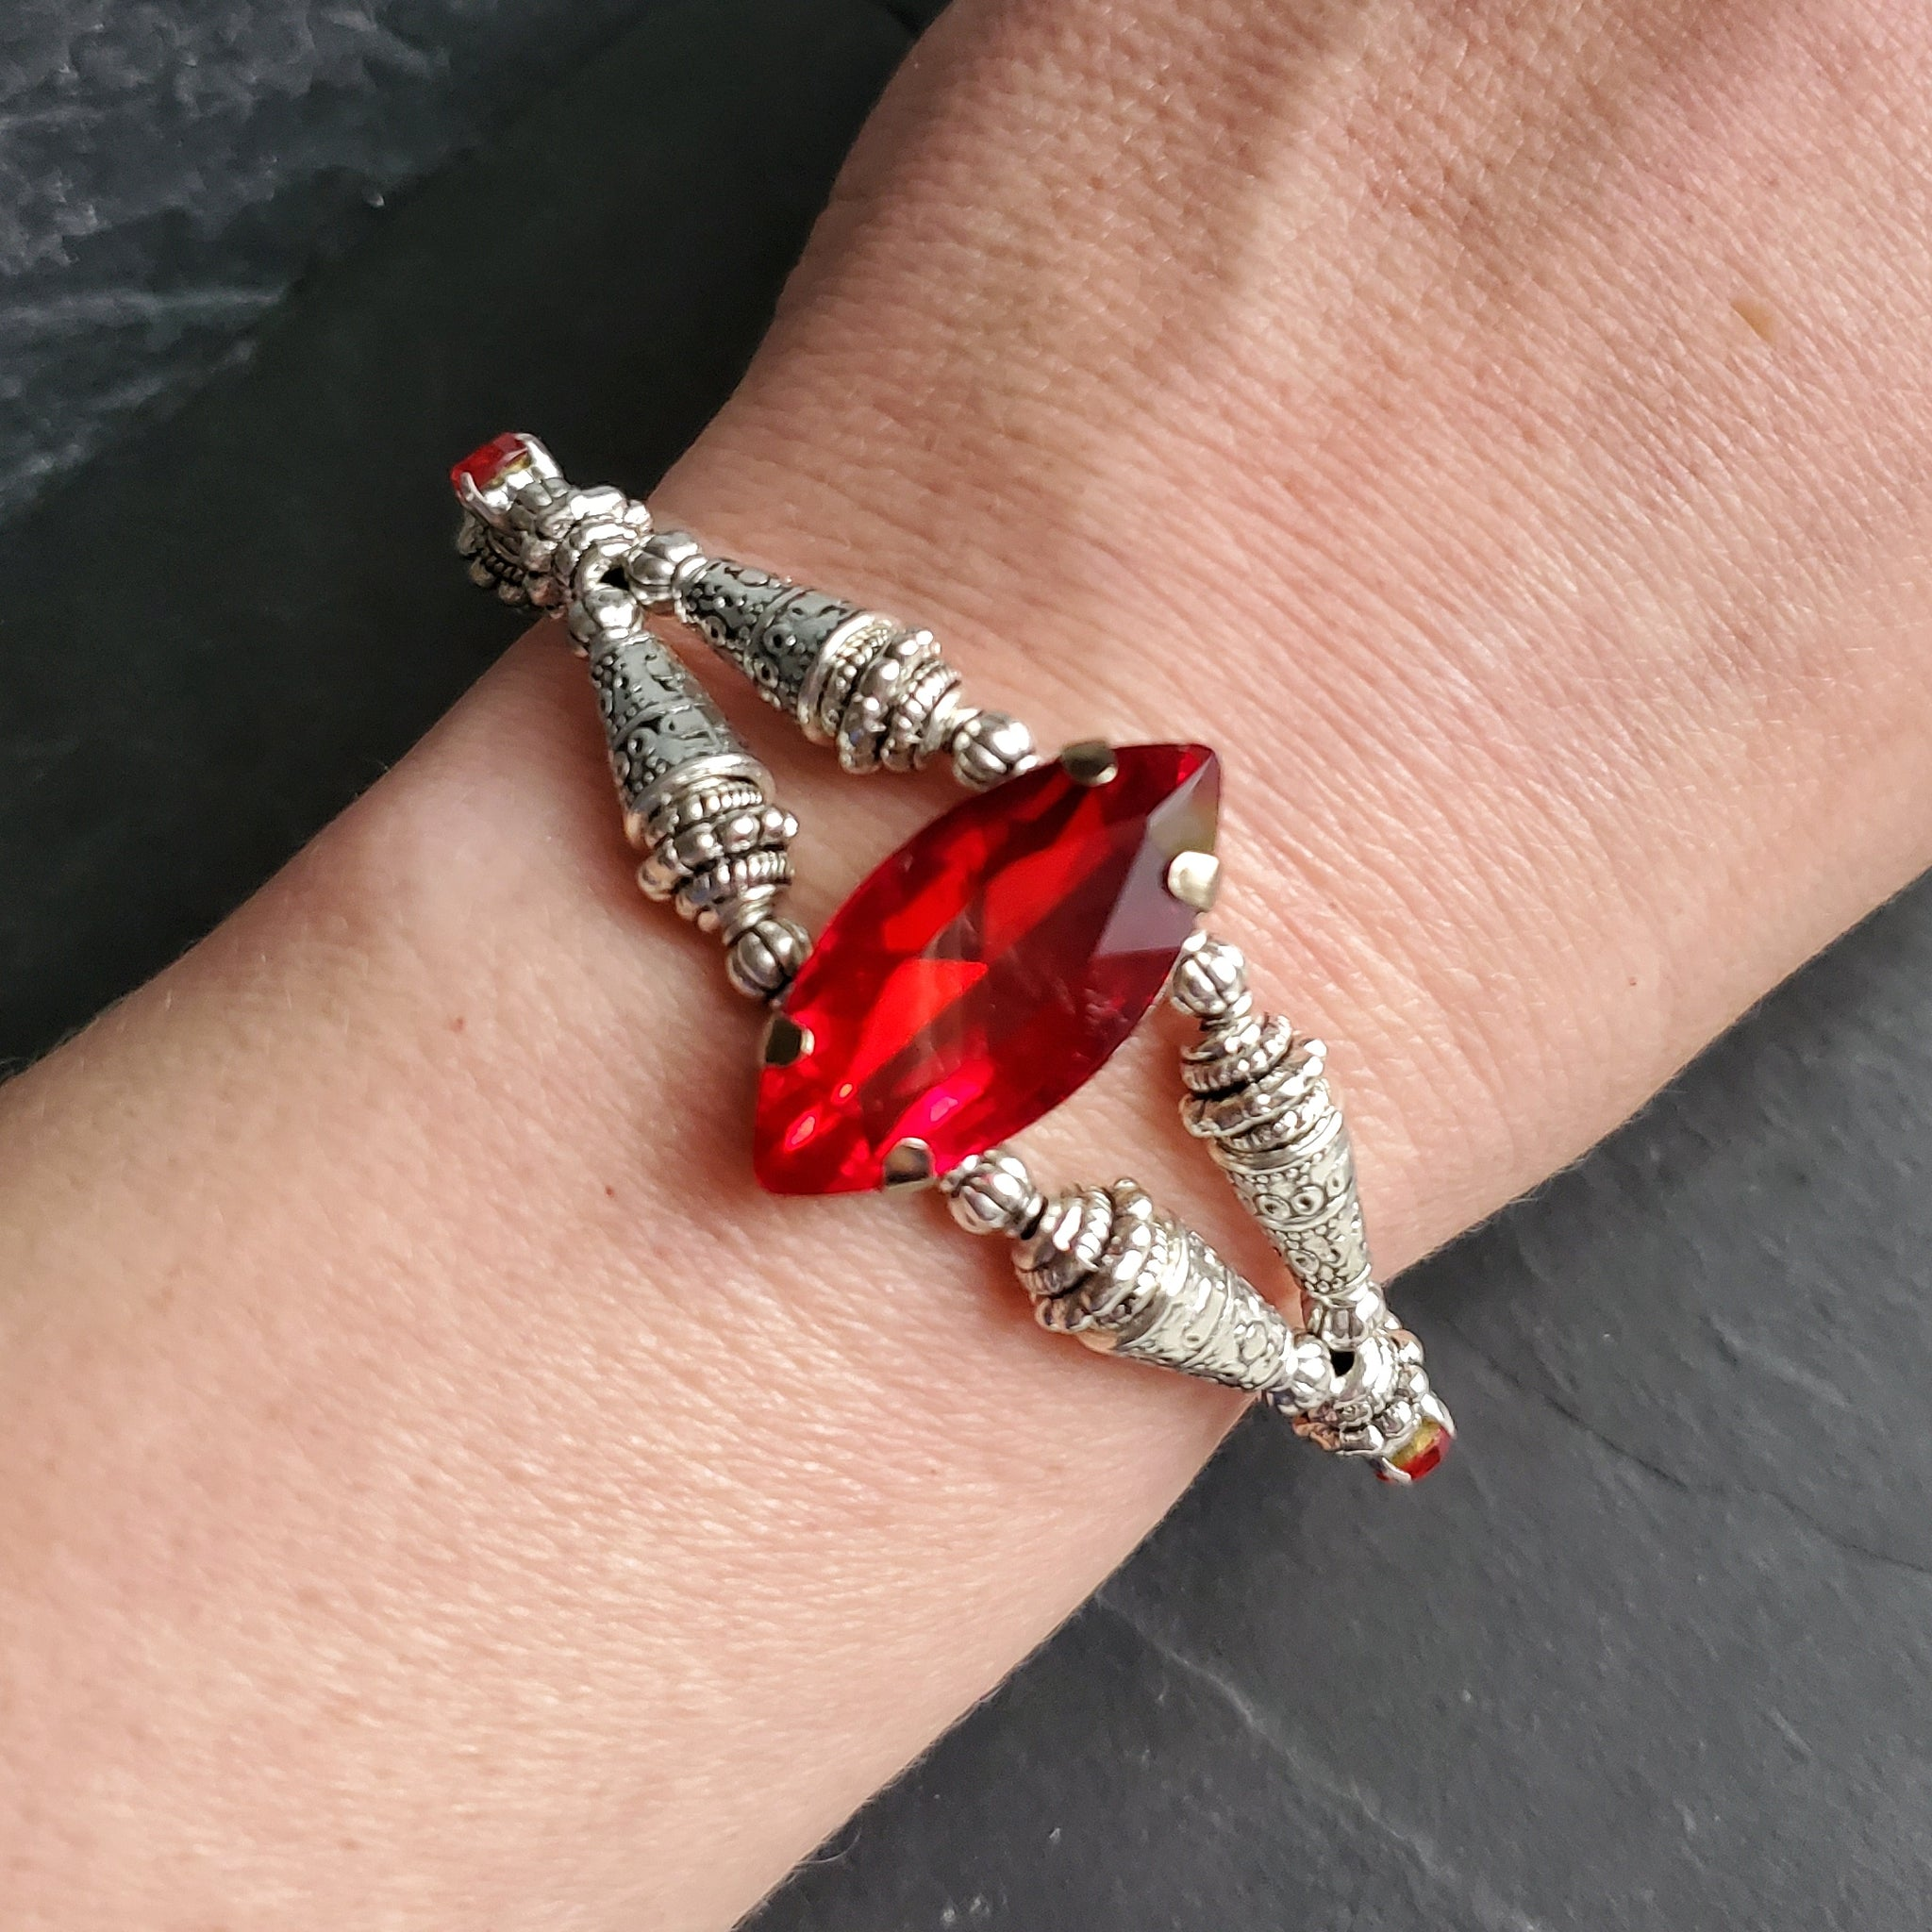 Red Rhinestone Bracelet Ren Faire Fantasy Jewelry